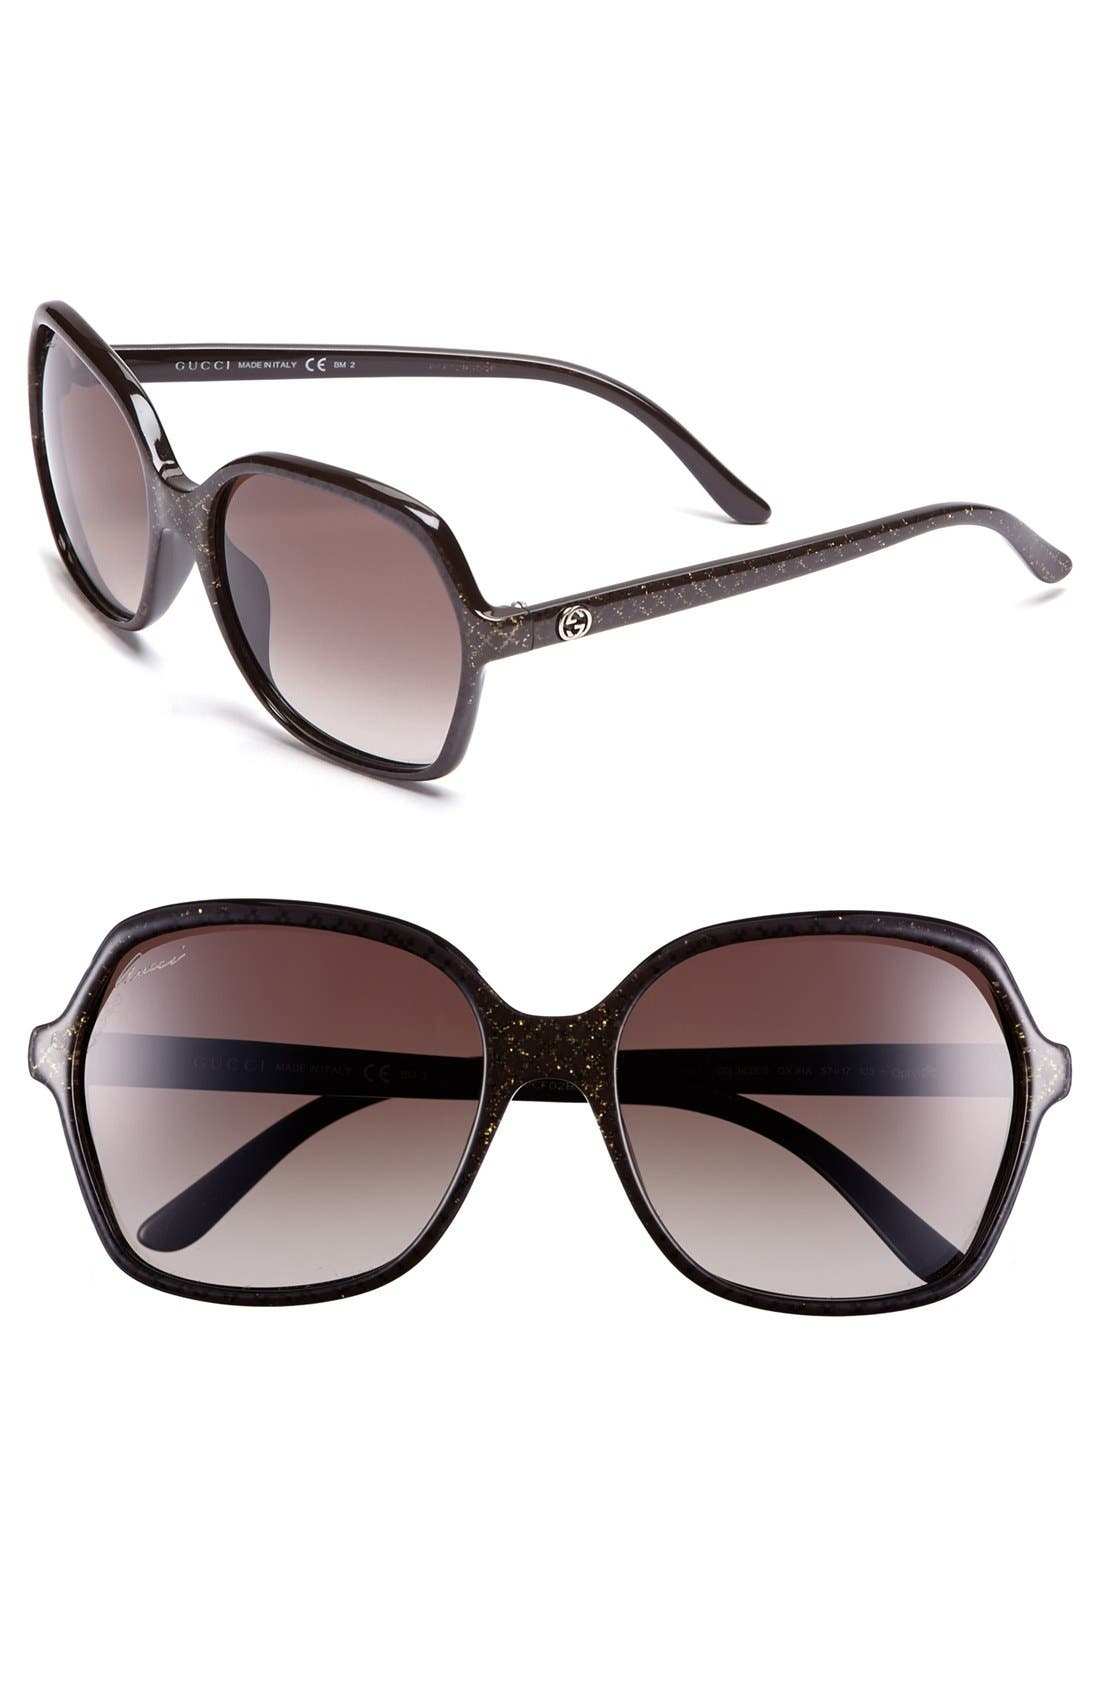 Alternate Image 1 Selected - Gucci 'Basic' 57mm Sunglasses